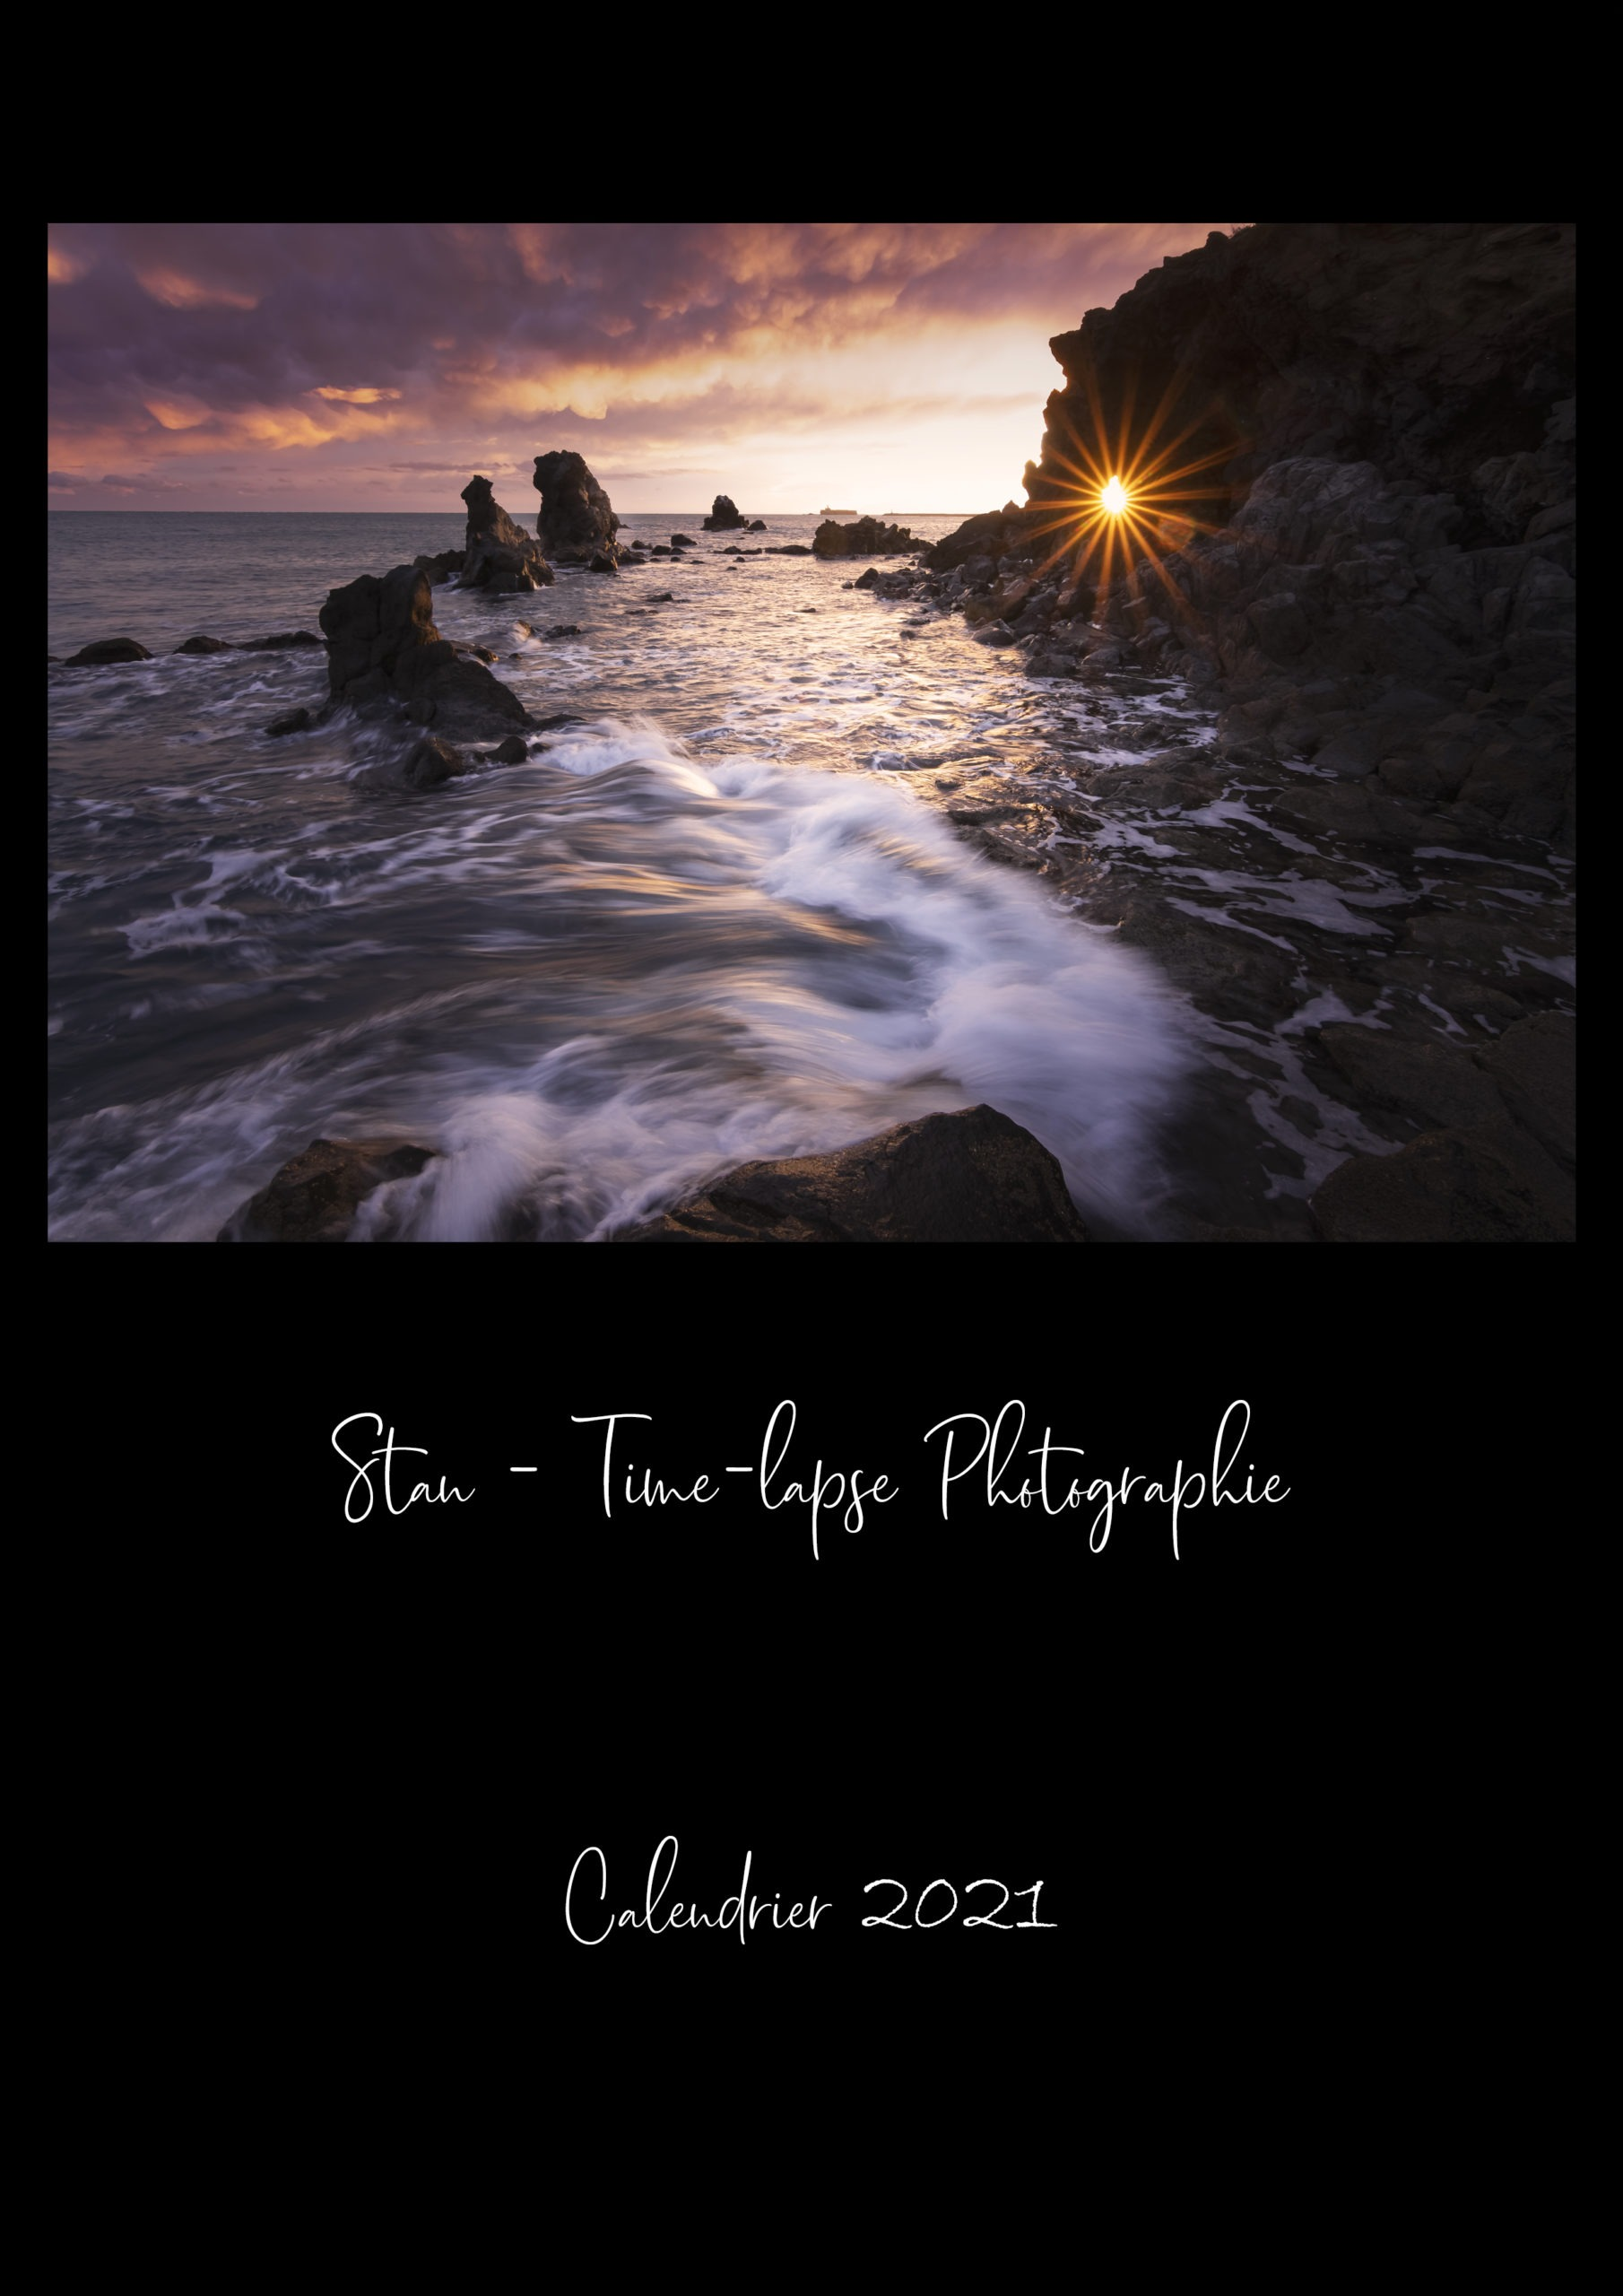 Calendrier 2021 - Stan-Time-lapse Photographie